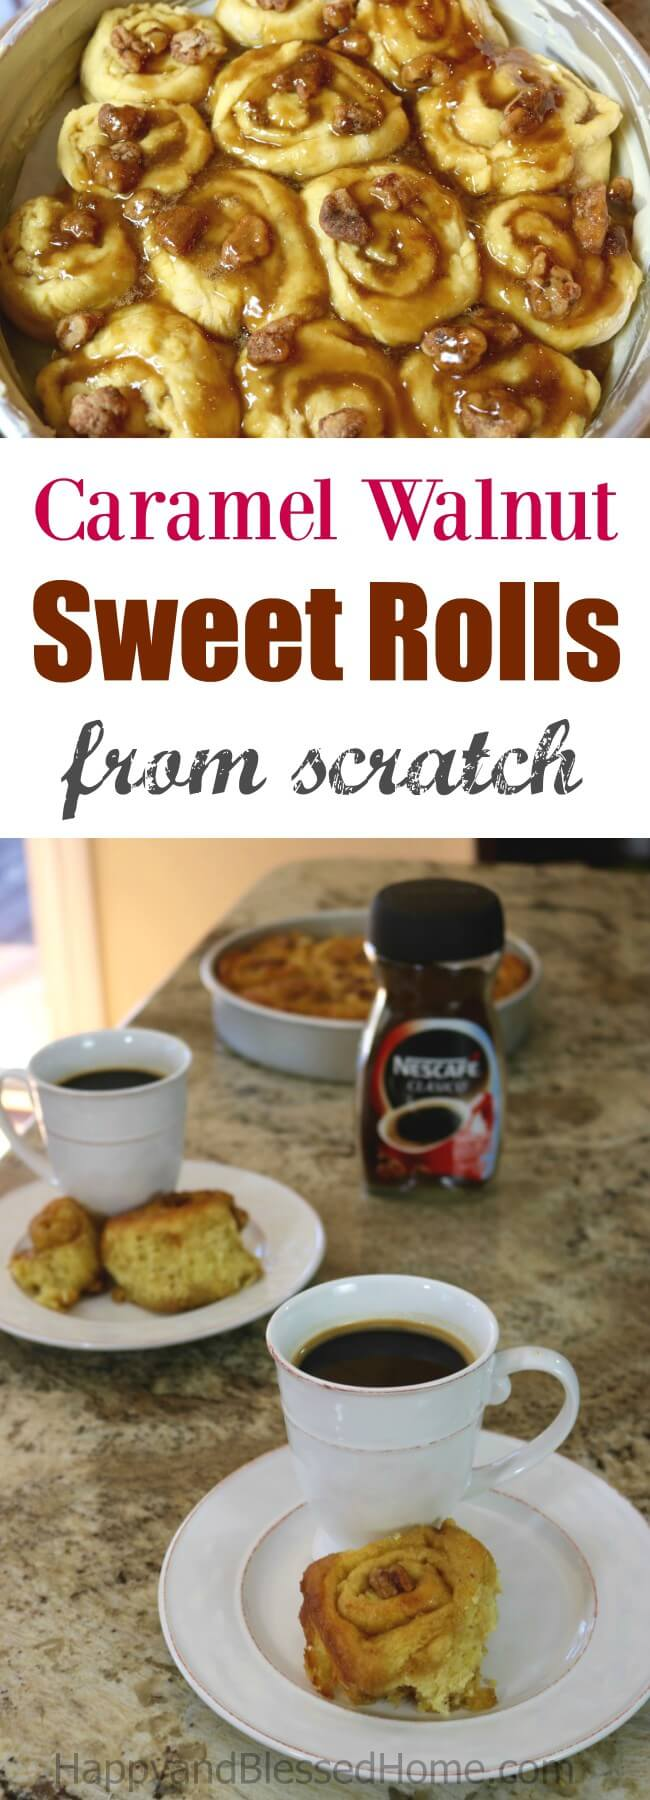 Easy Recipe for Caramel Walnut Sweet Rolls from Scratch - perfect fpr breakfast or as an after dinner dessrt